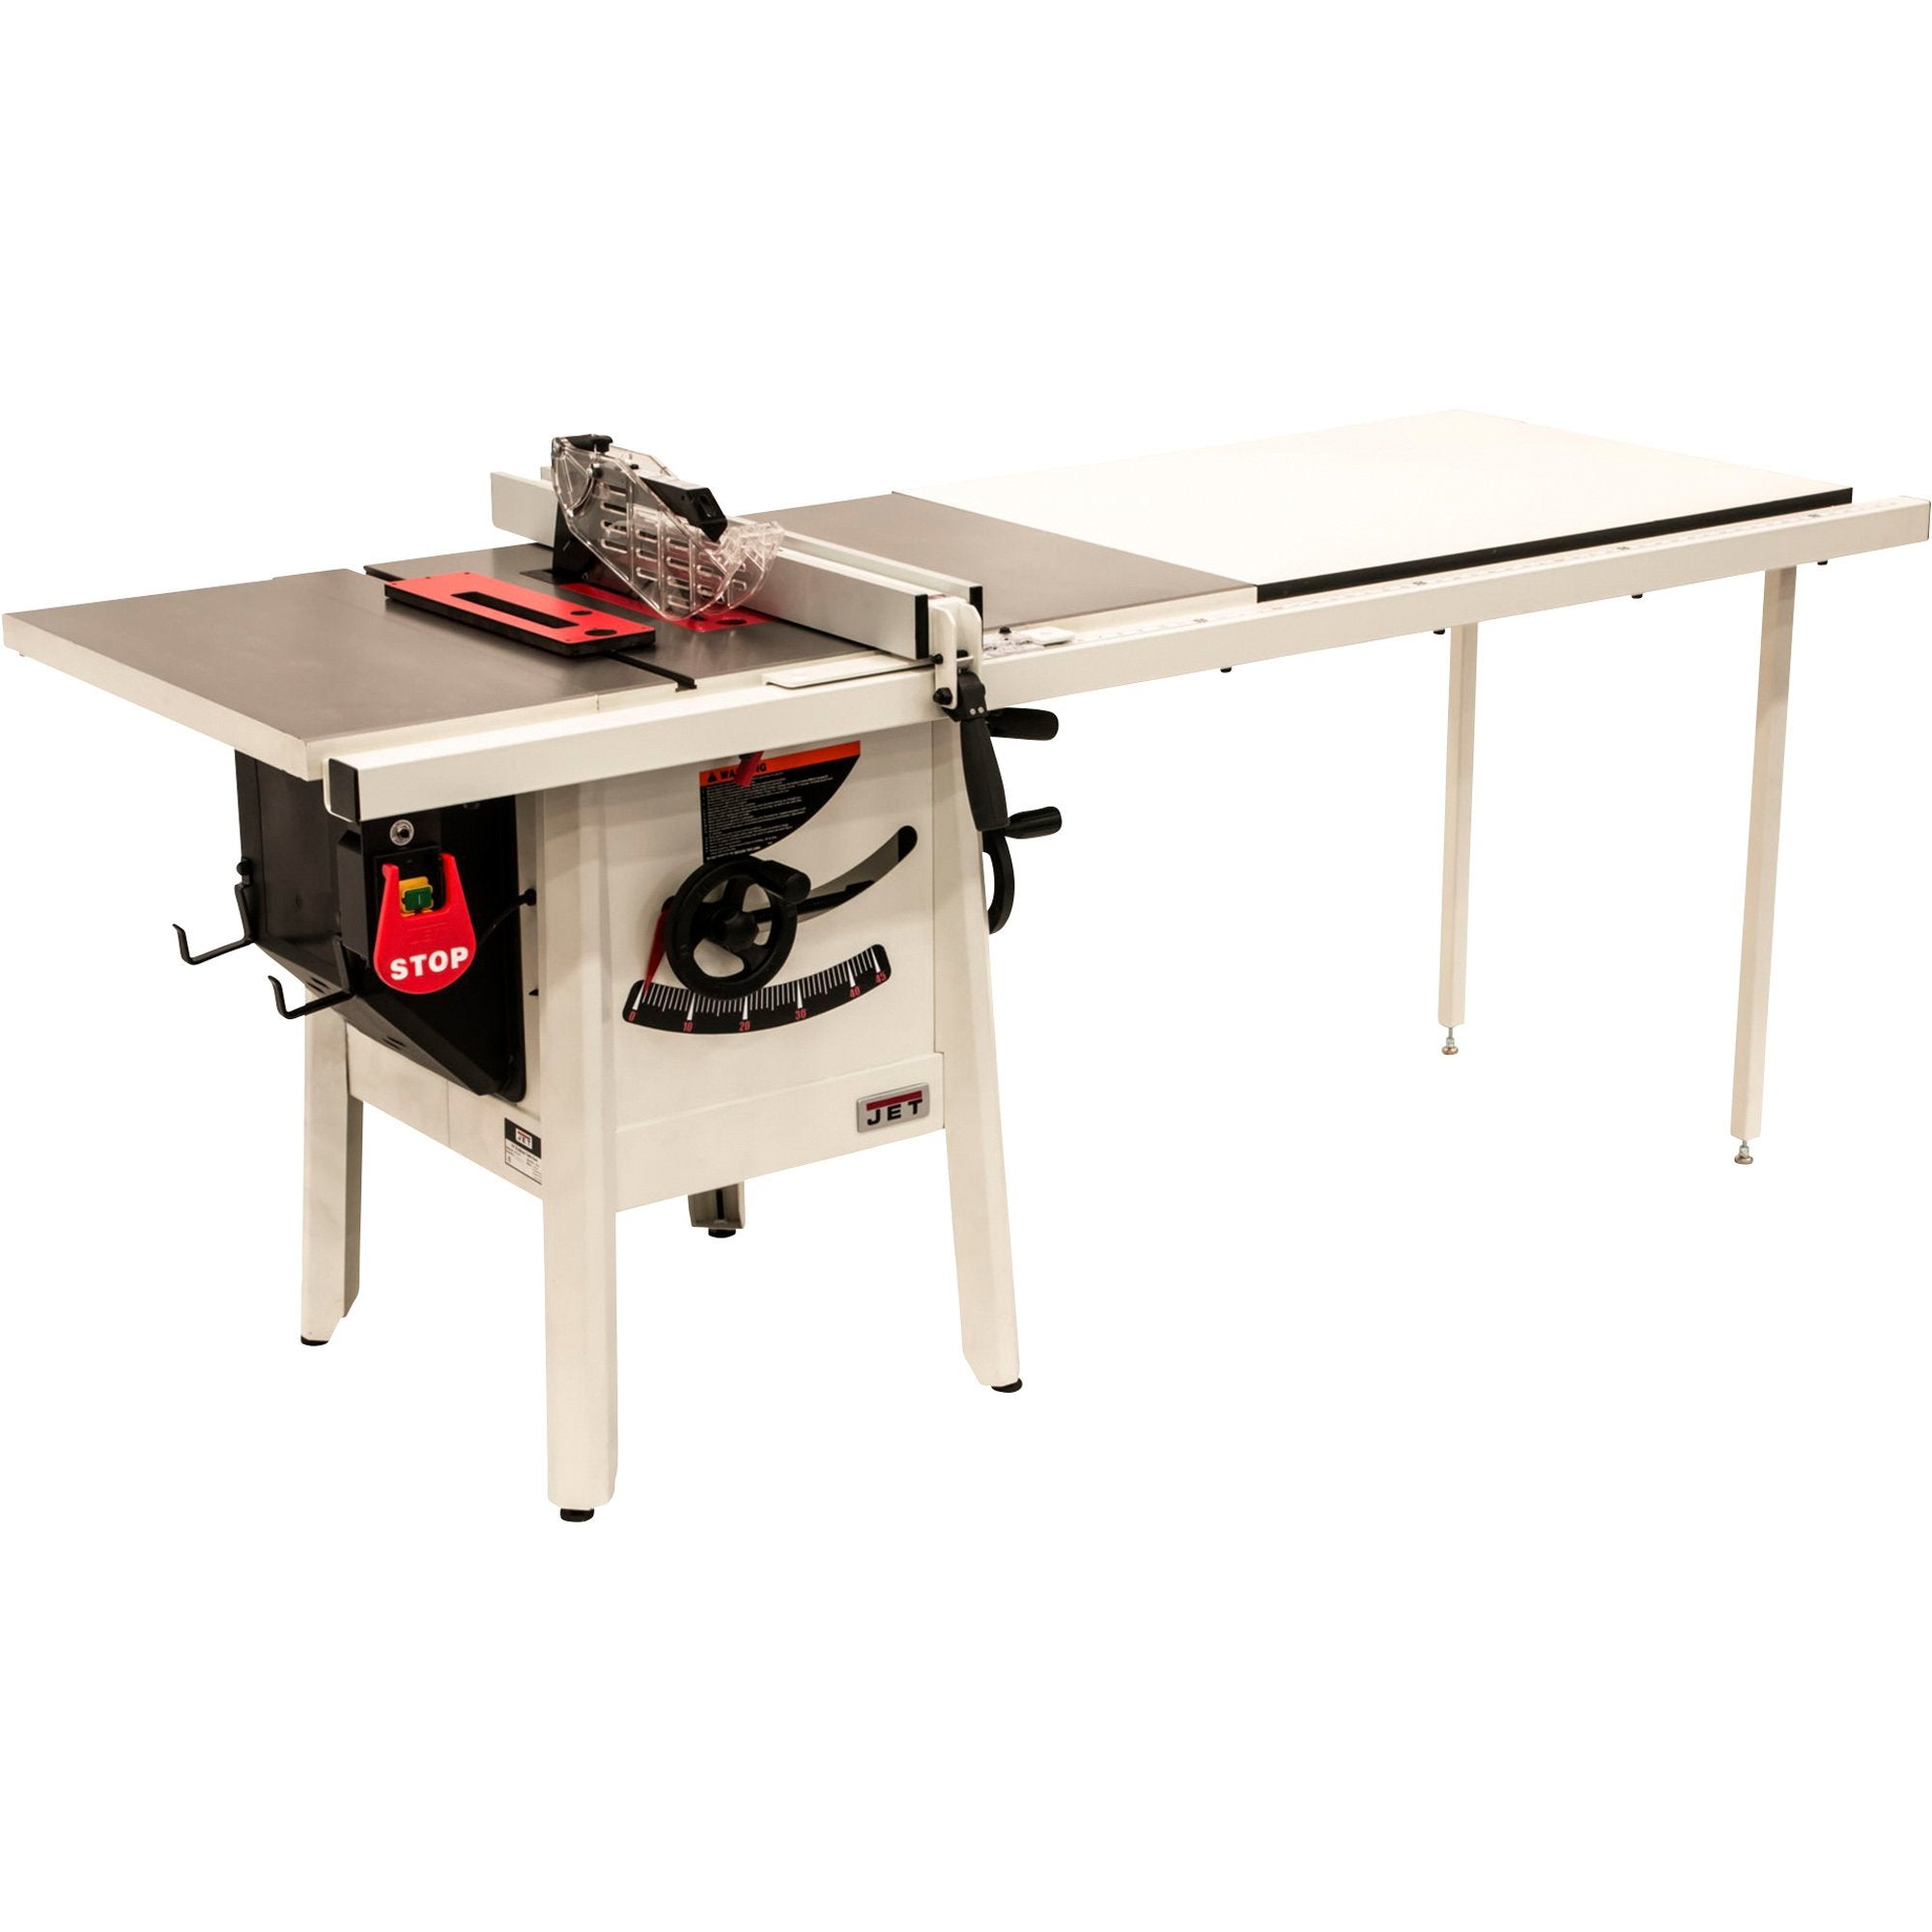 The Best Table Saws: Make Smooth and Accurate Cuts